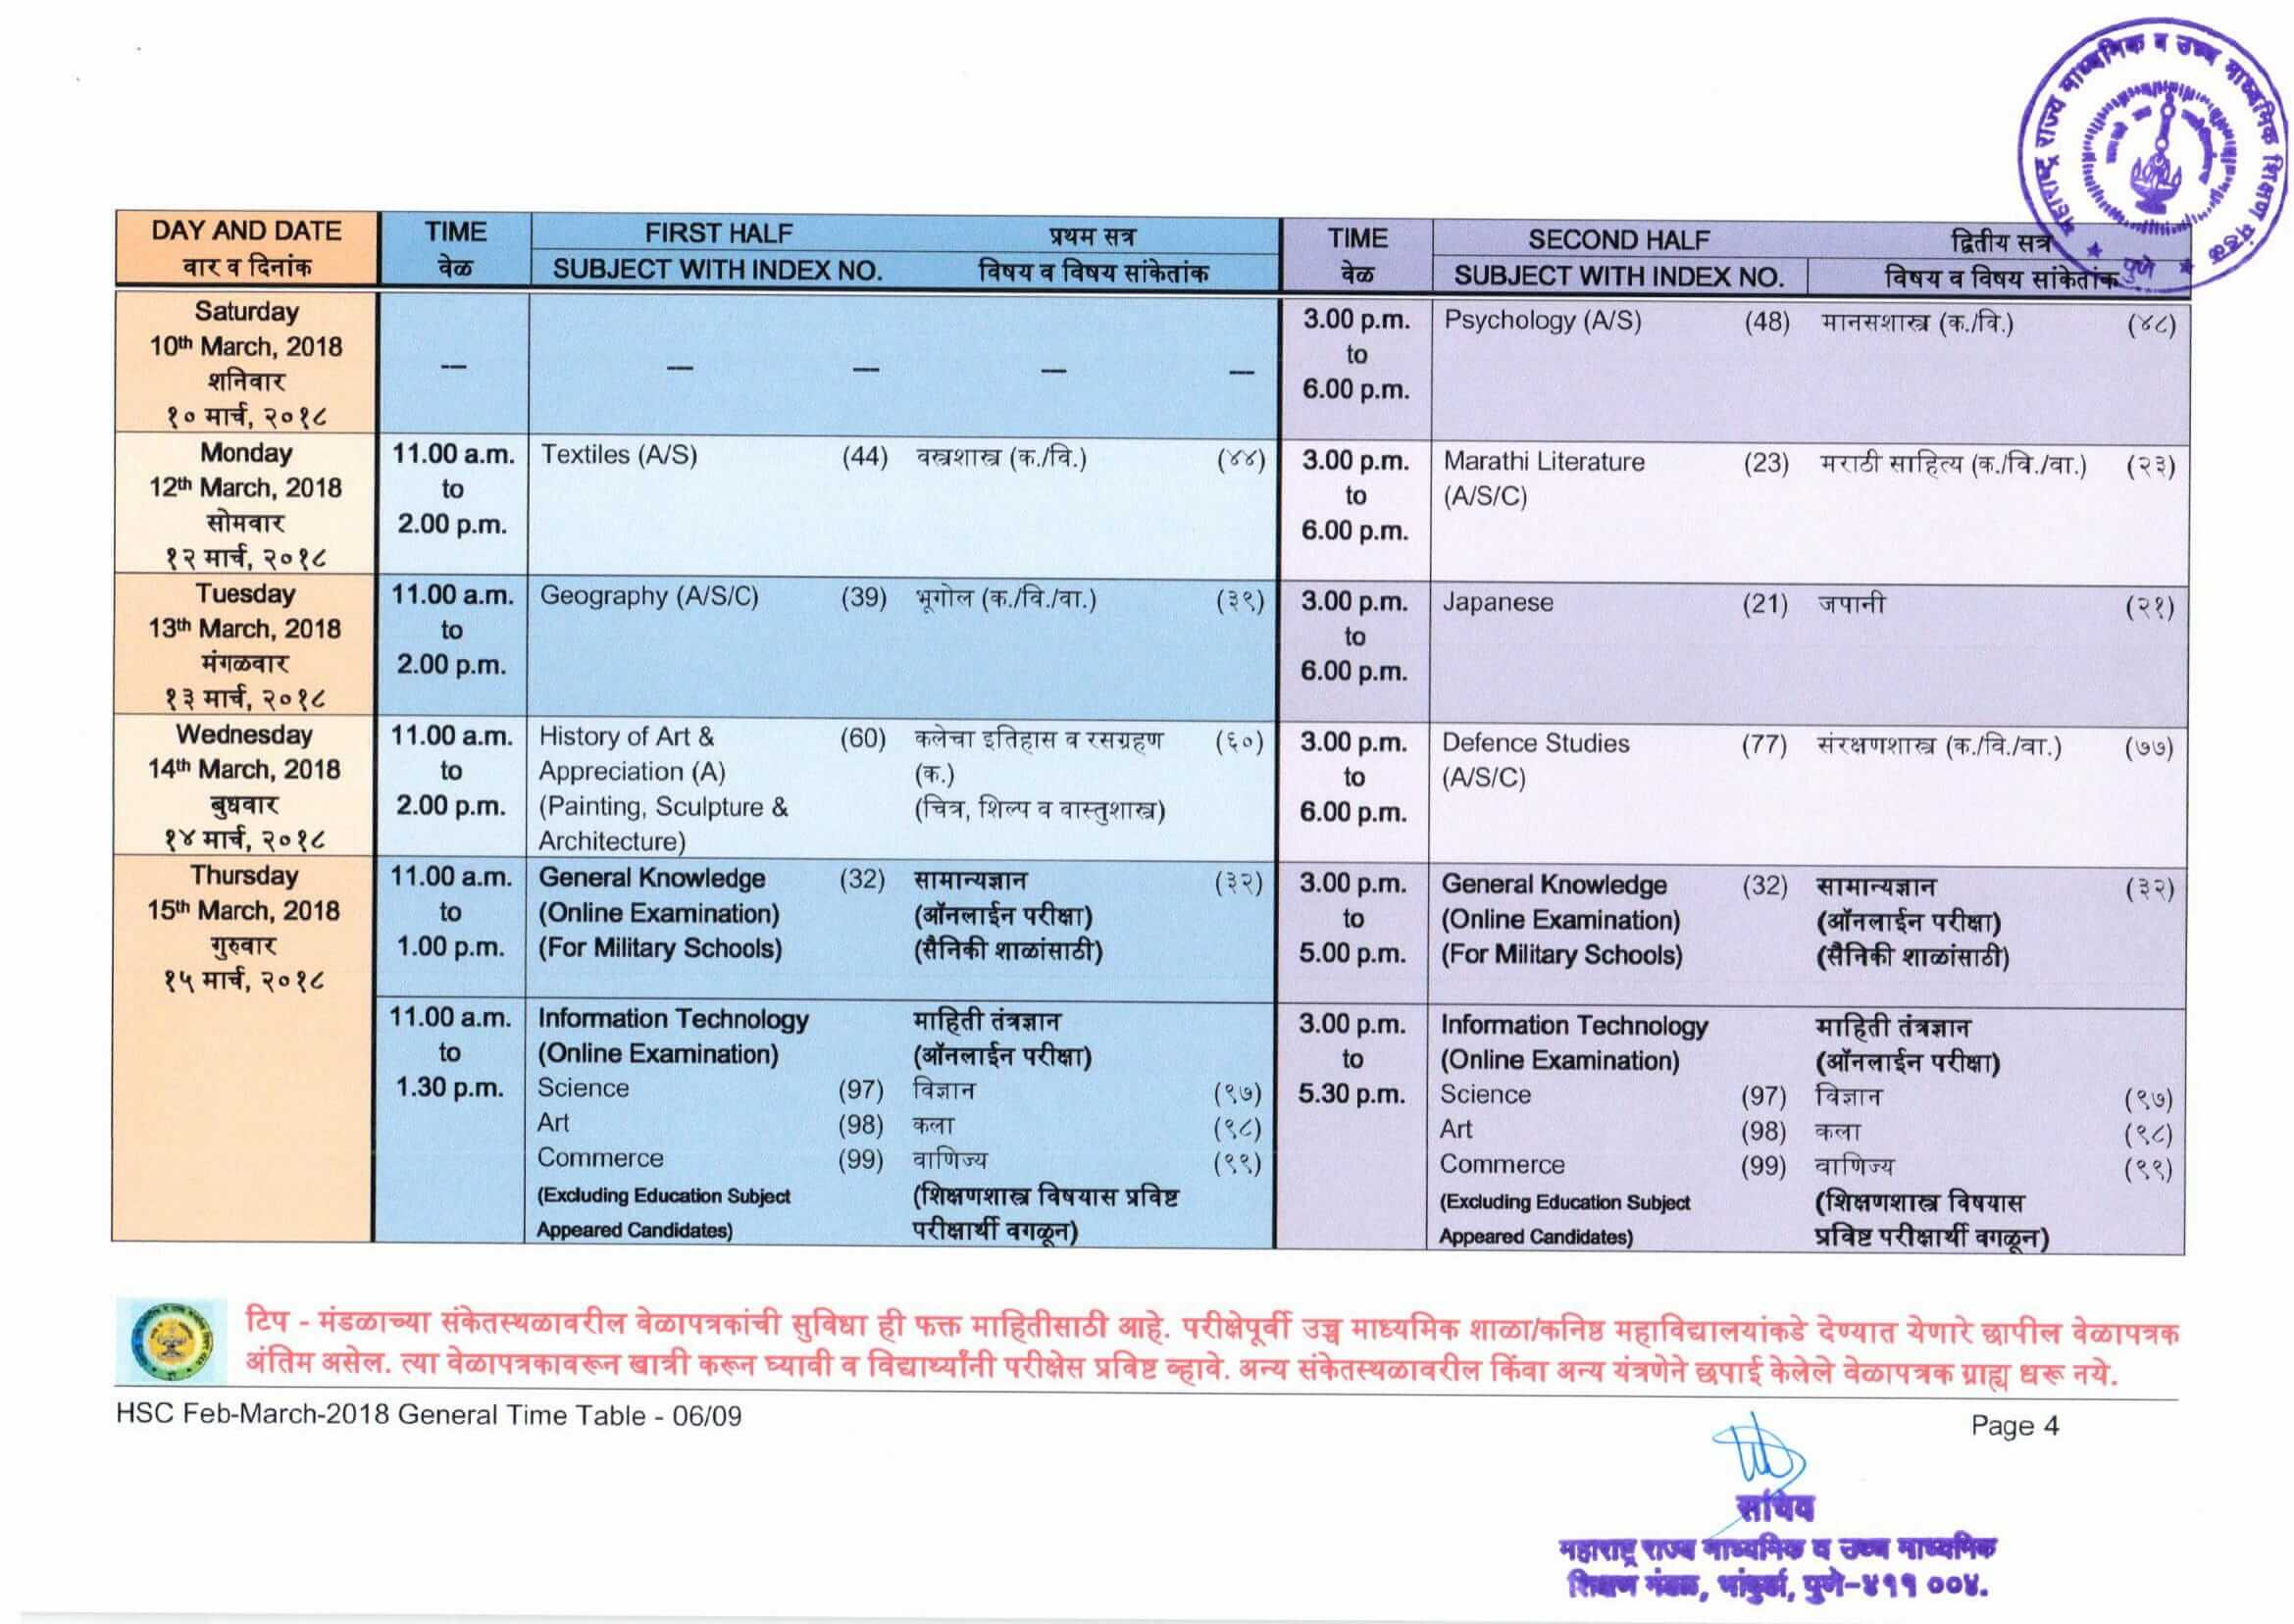 hsc timetable class 12 exam